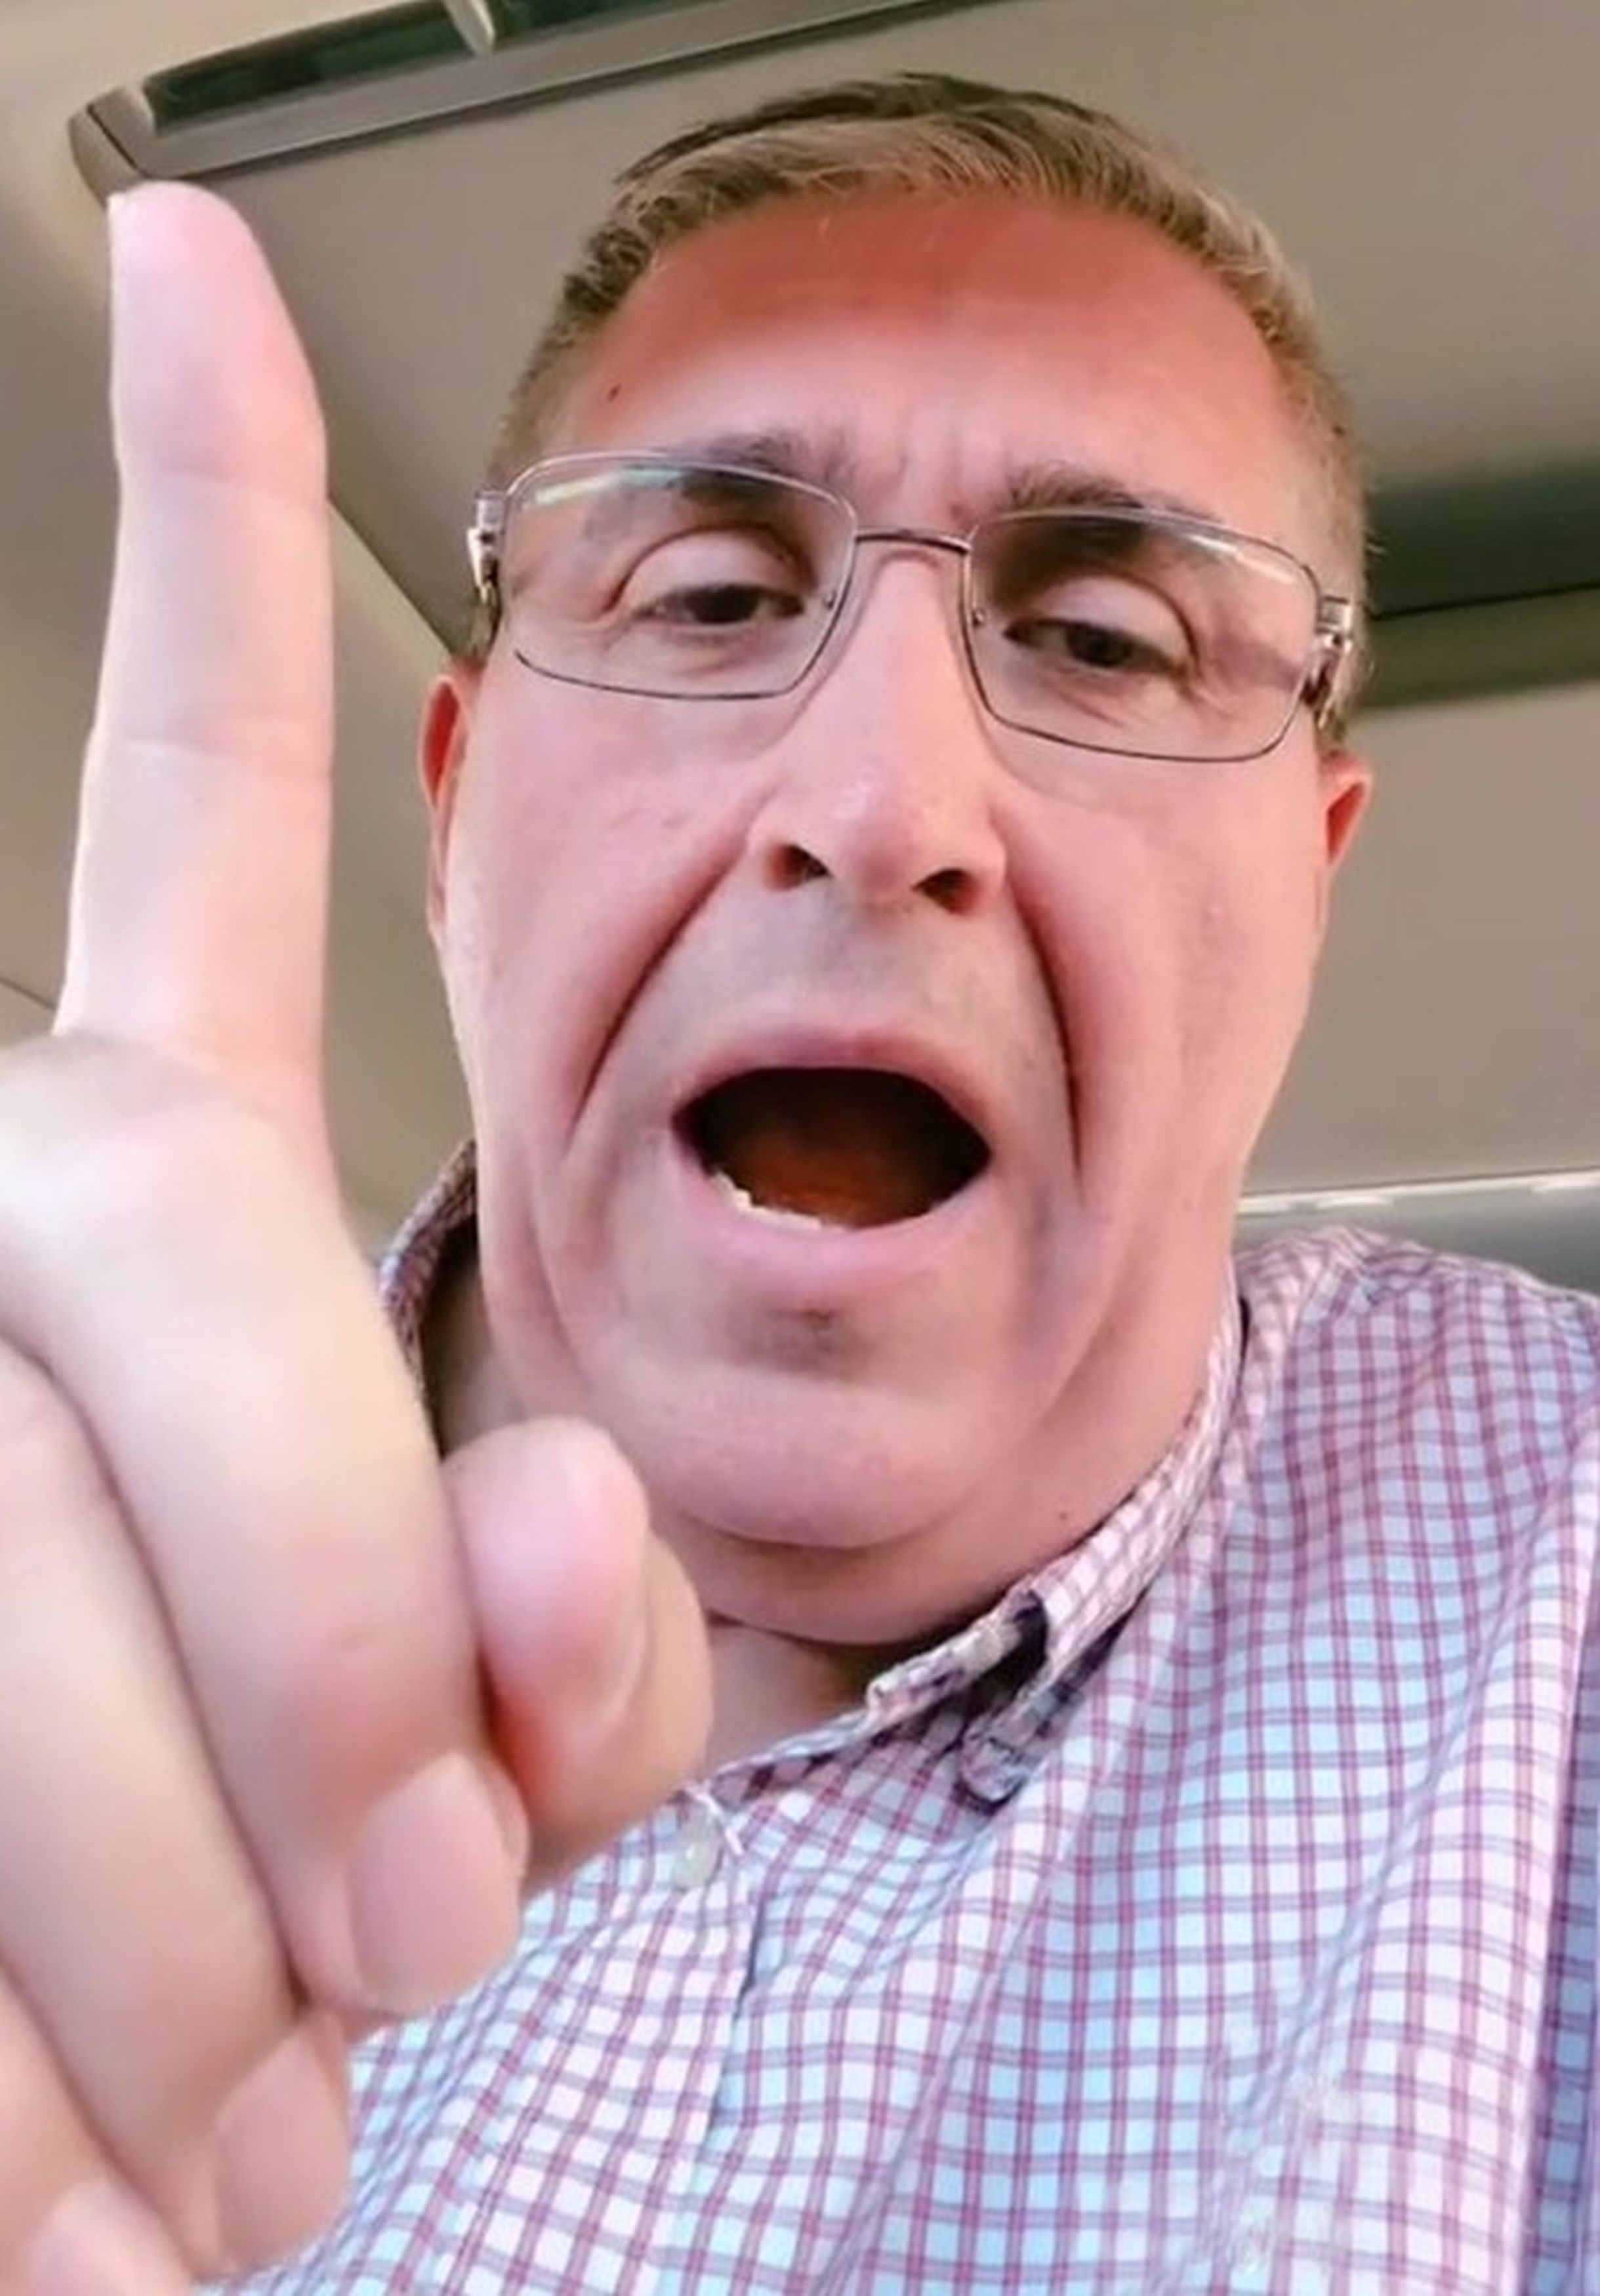 Grandad Of Seven Impersonating Dinosaurs On TikTok Earns Thousands Of Followers